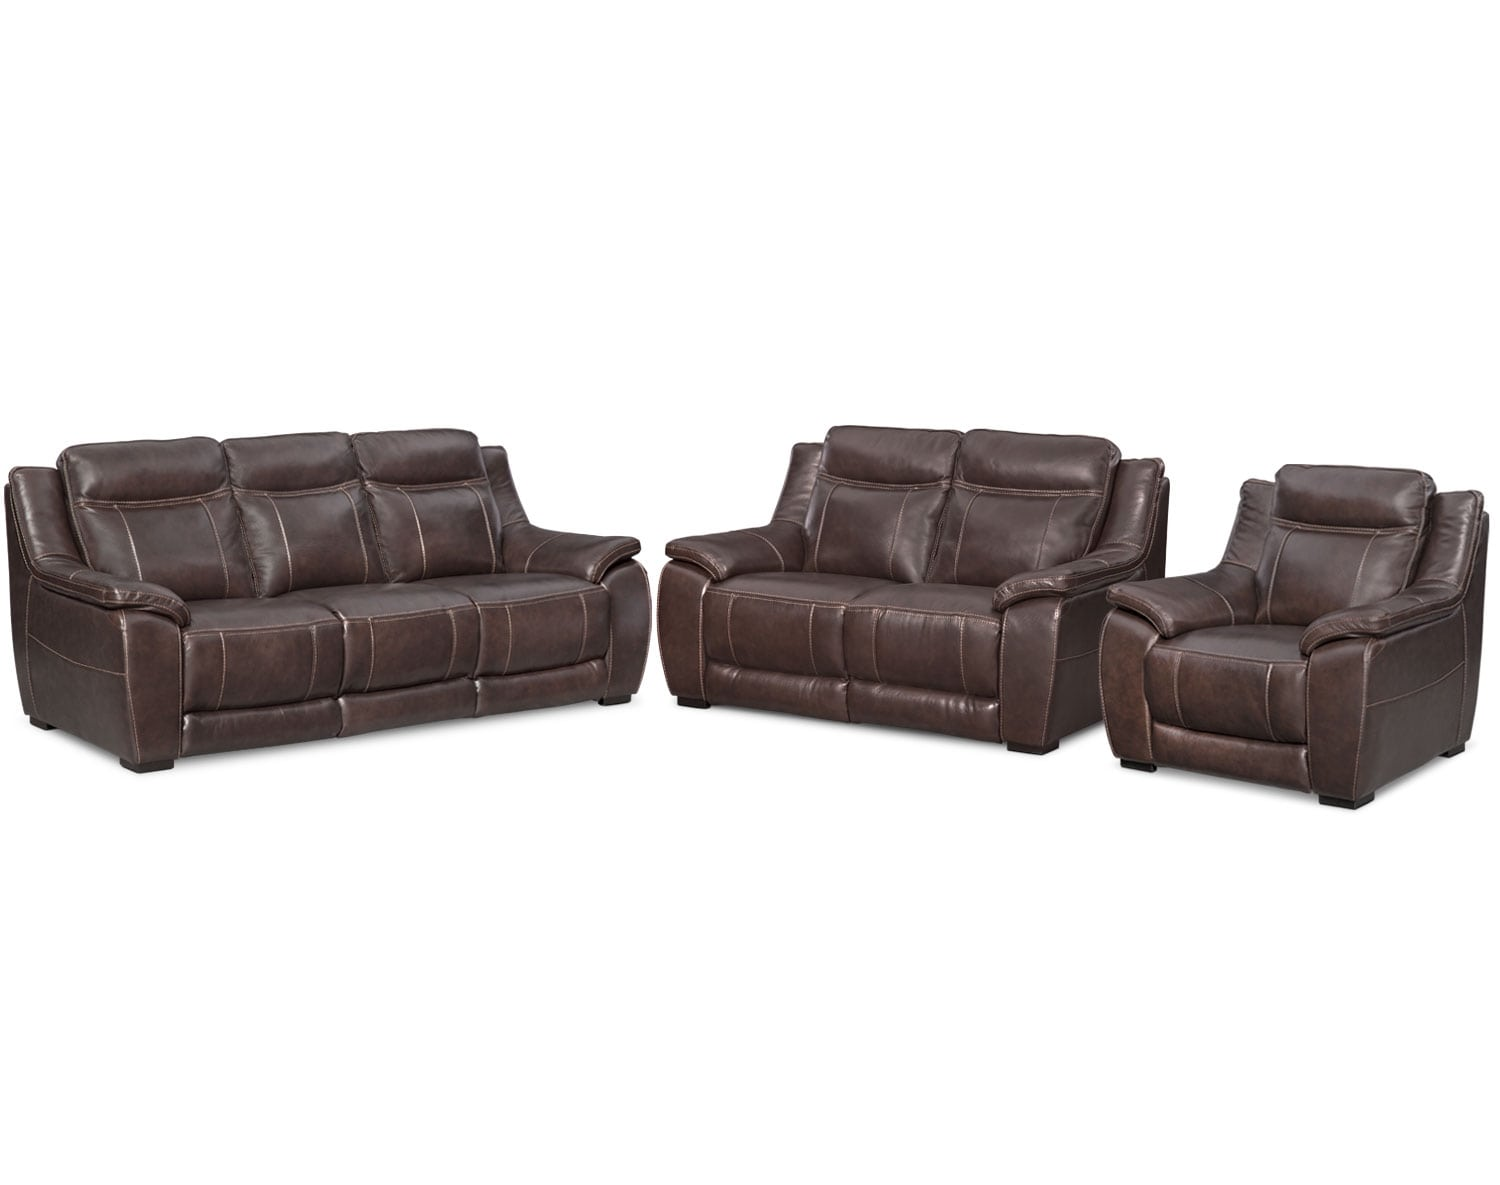 Manwah furniture replacement parts recliner sofa and for Sectional sofa recliner repair parts